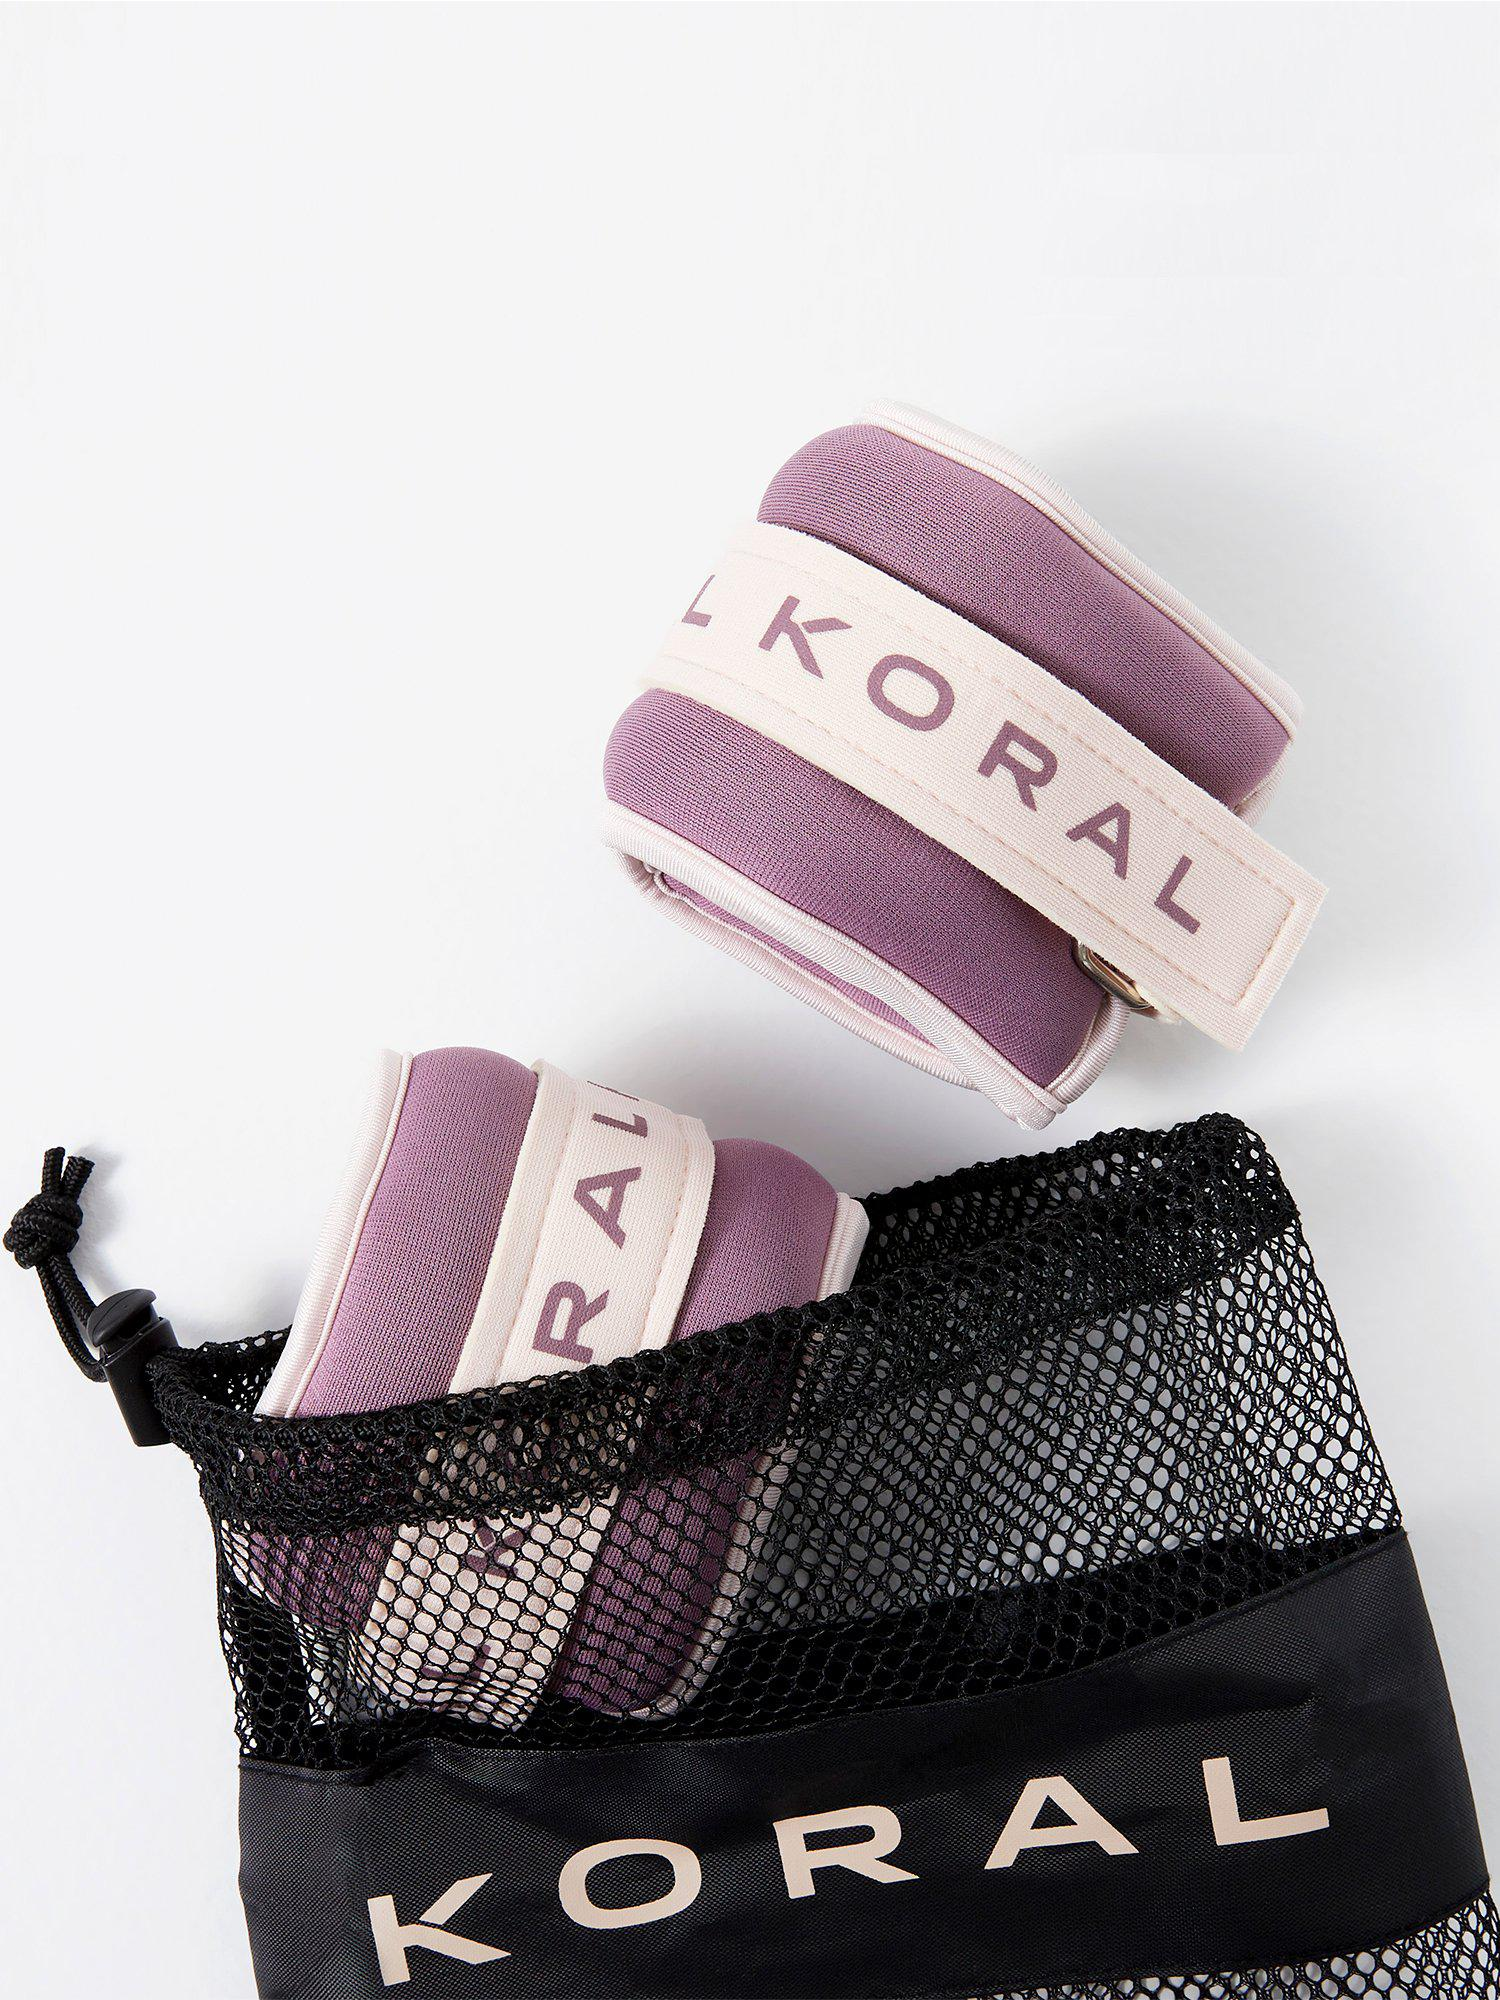 Koral Logo Ankle Weights - 1lb Weights